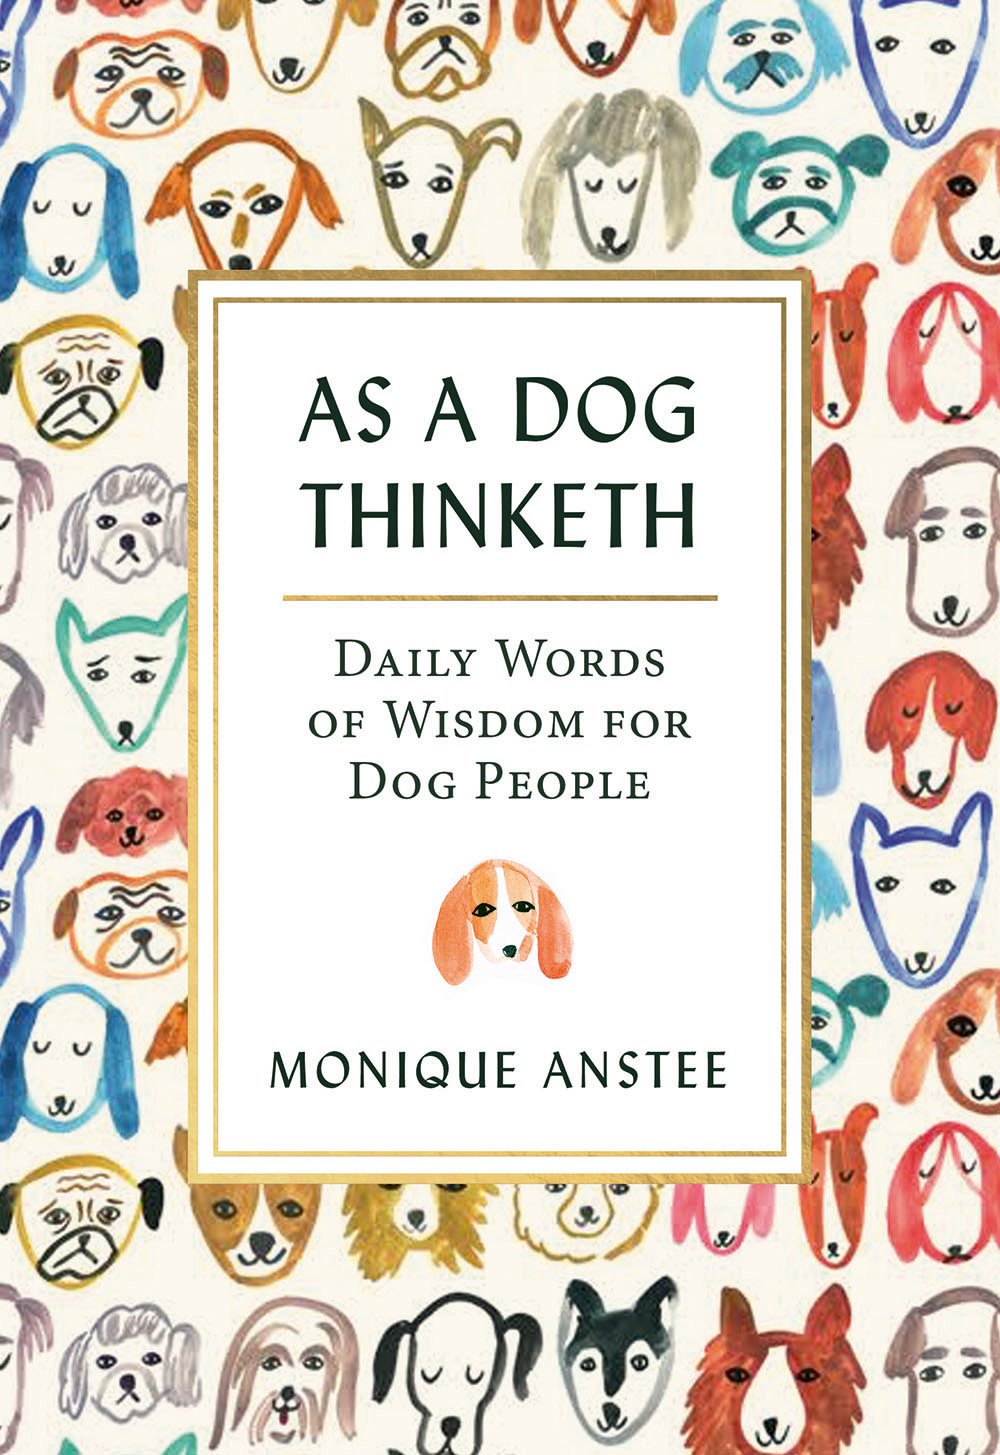 As A Dog Thinketh: Daily Words of Wisdom for Dog People